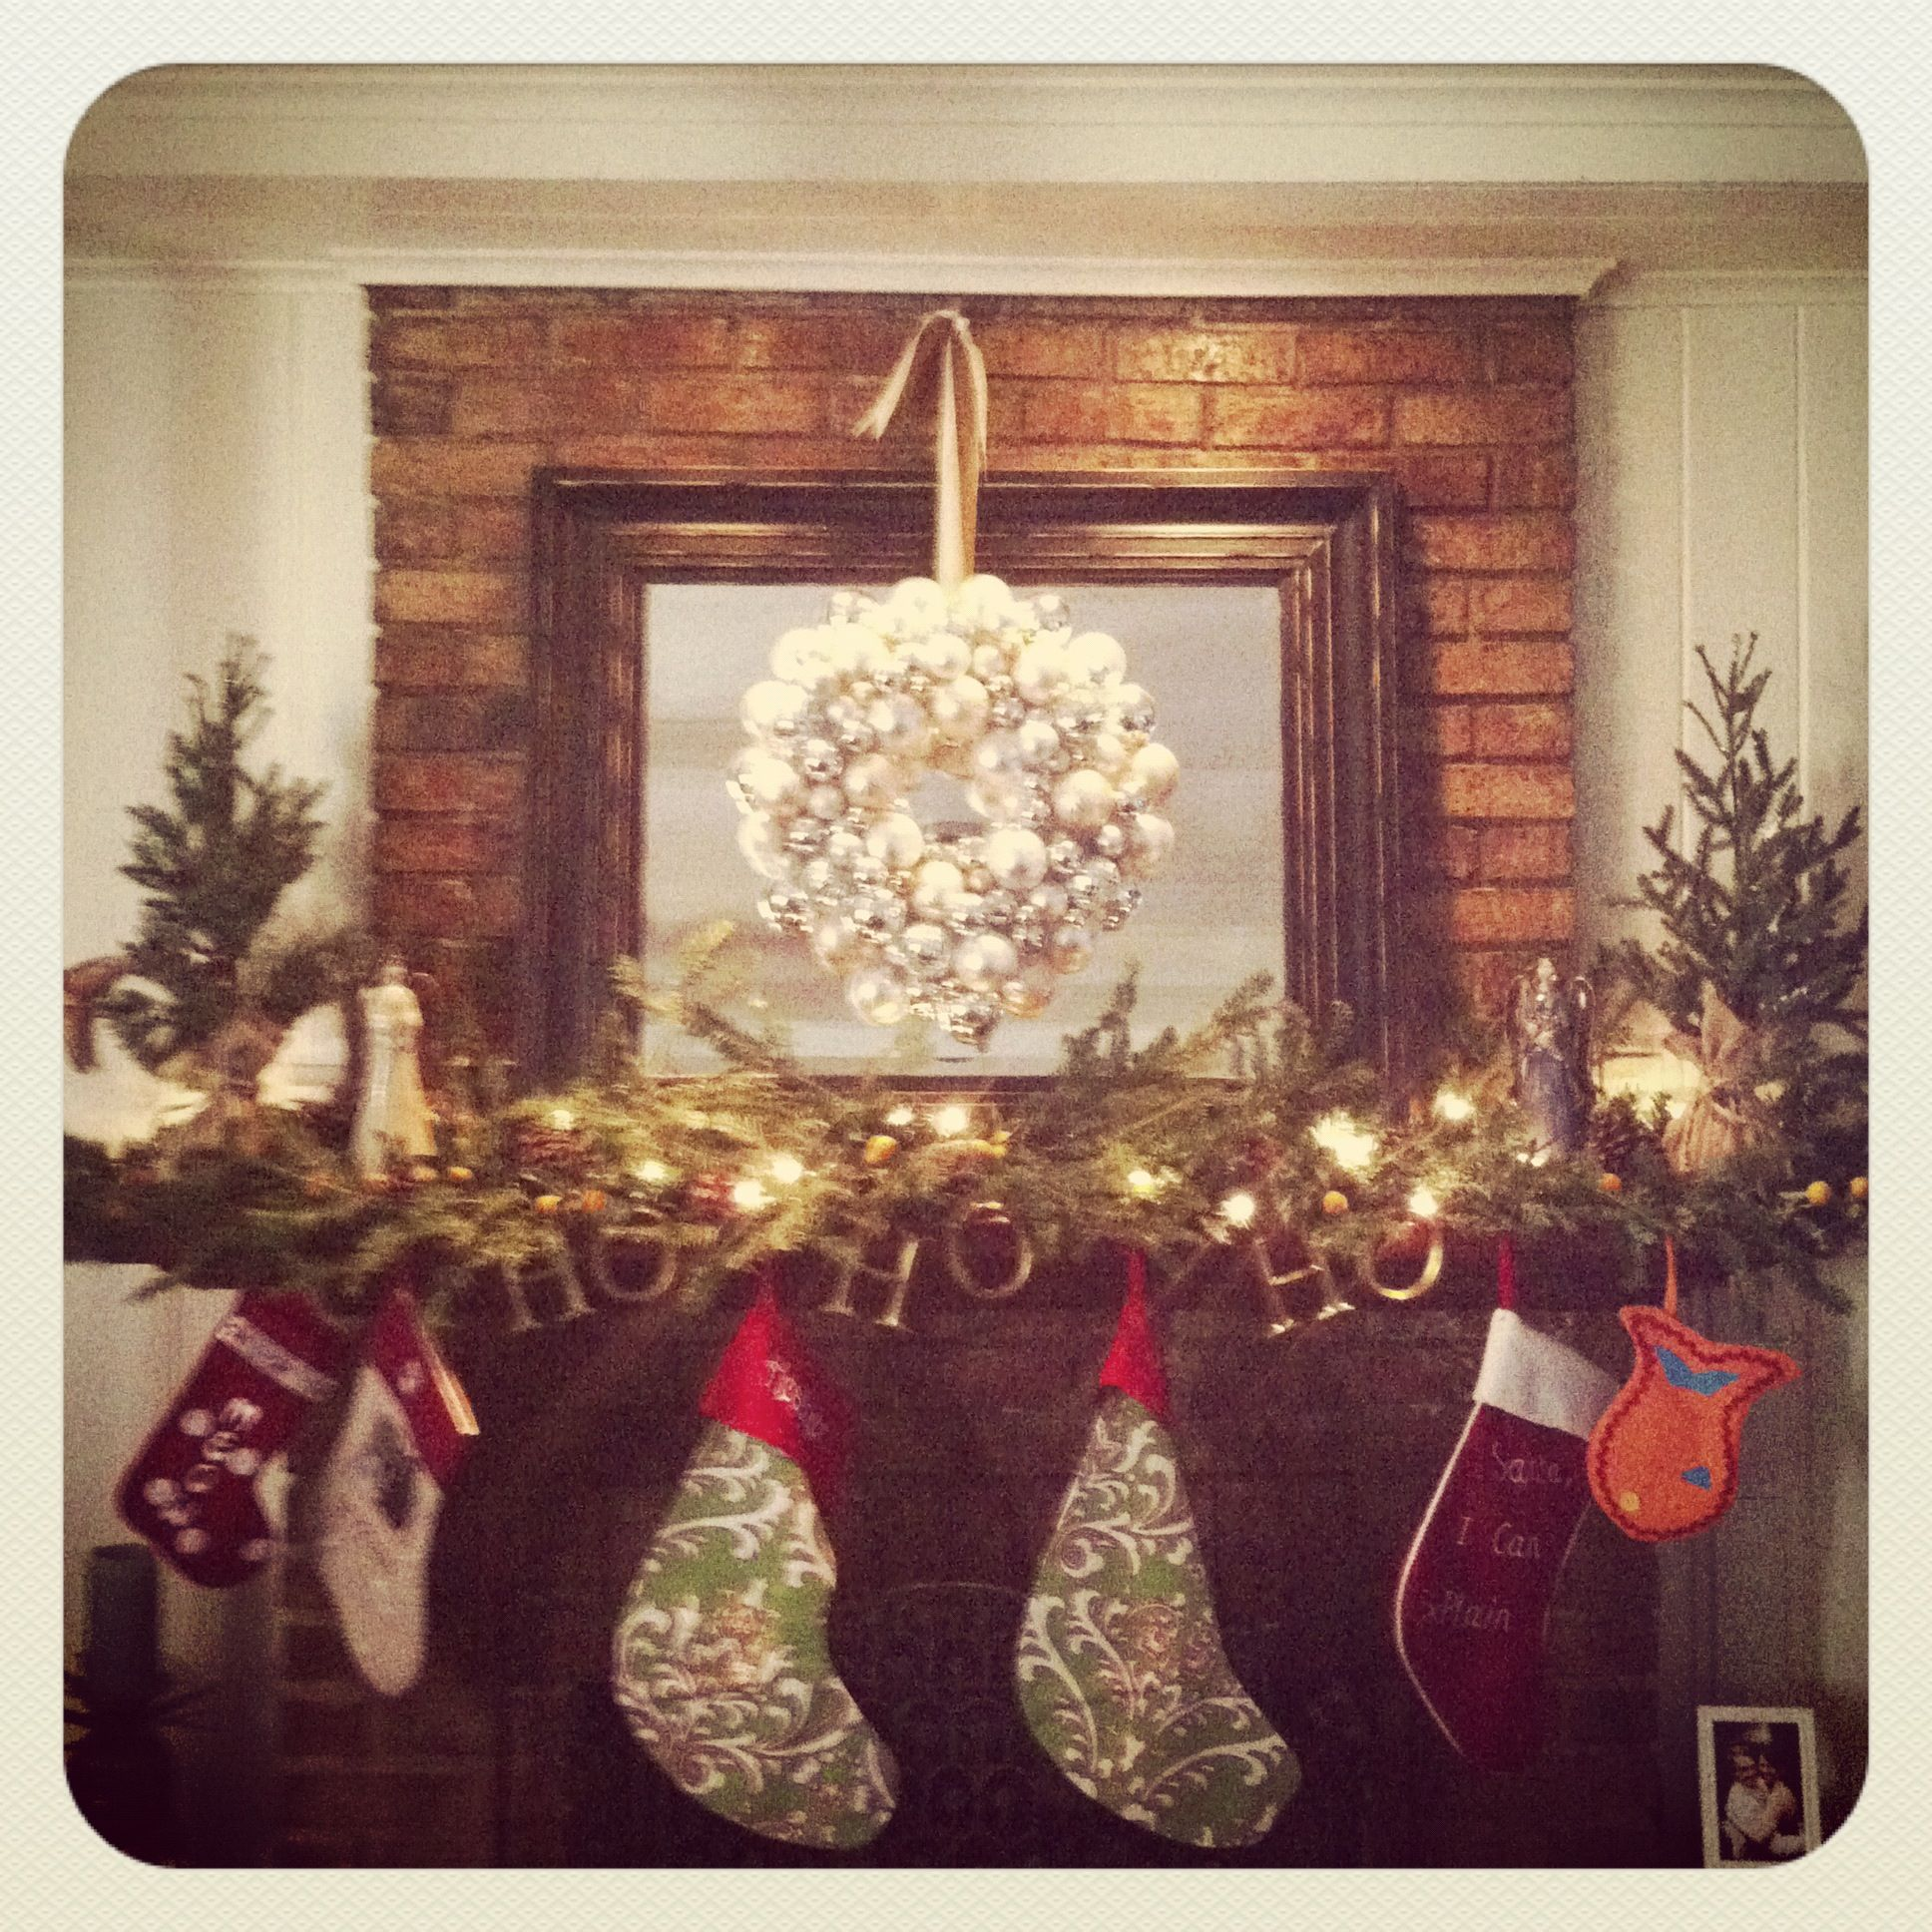 My Mantle Decorated For Christmas 2012Theme Rustic